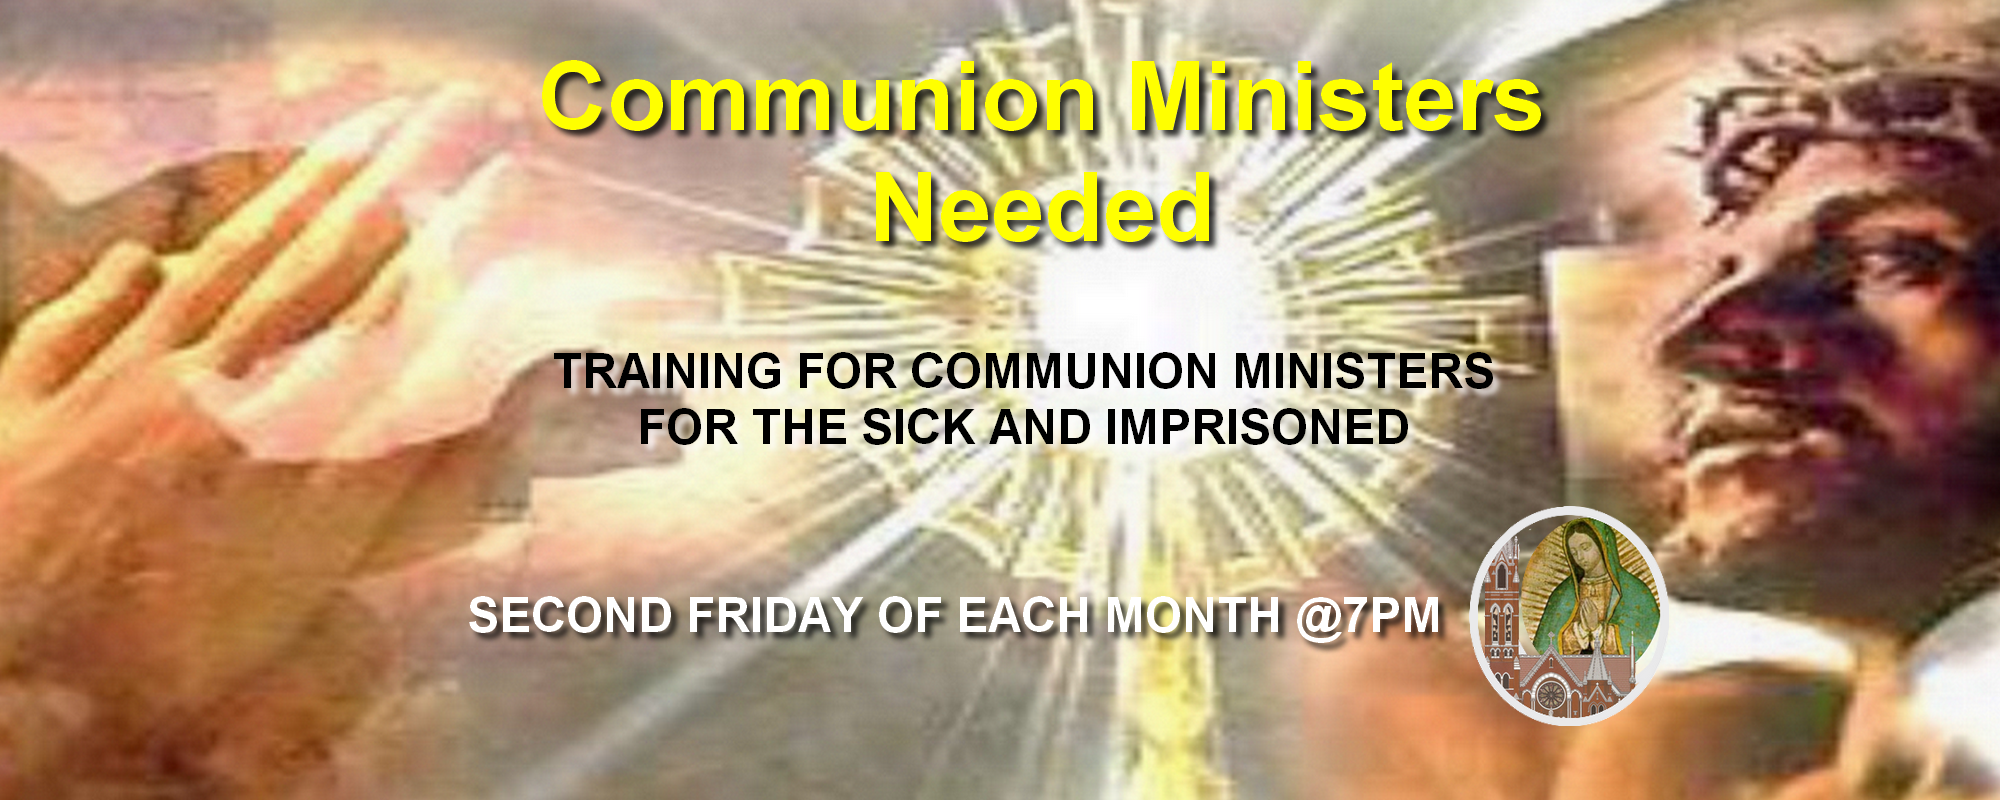 Ministers of Communion